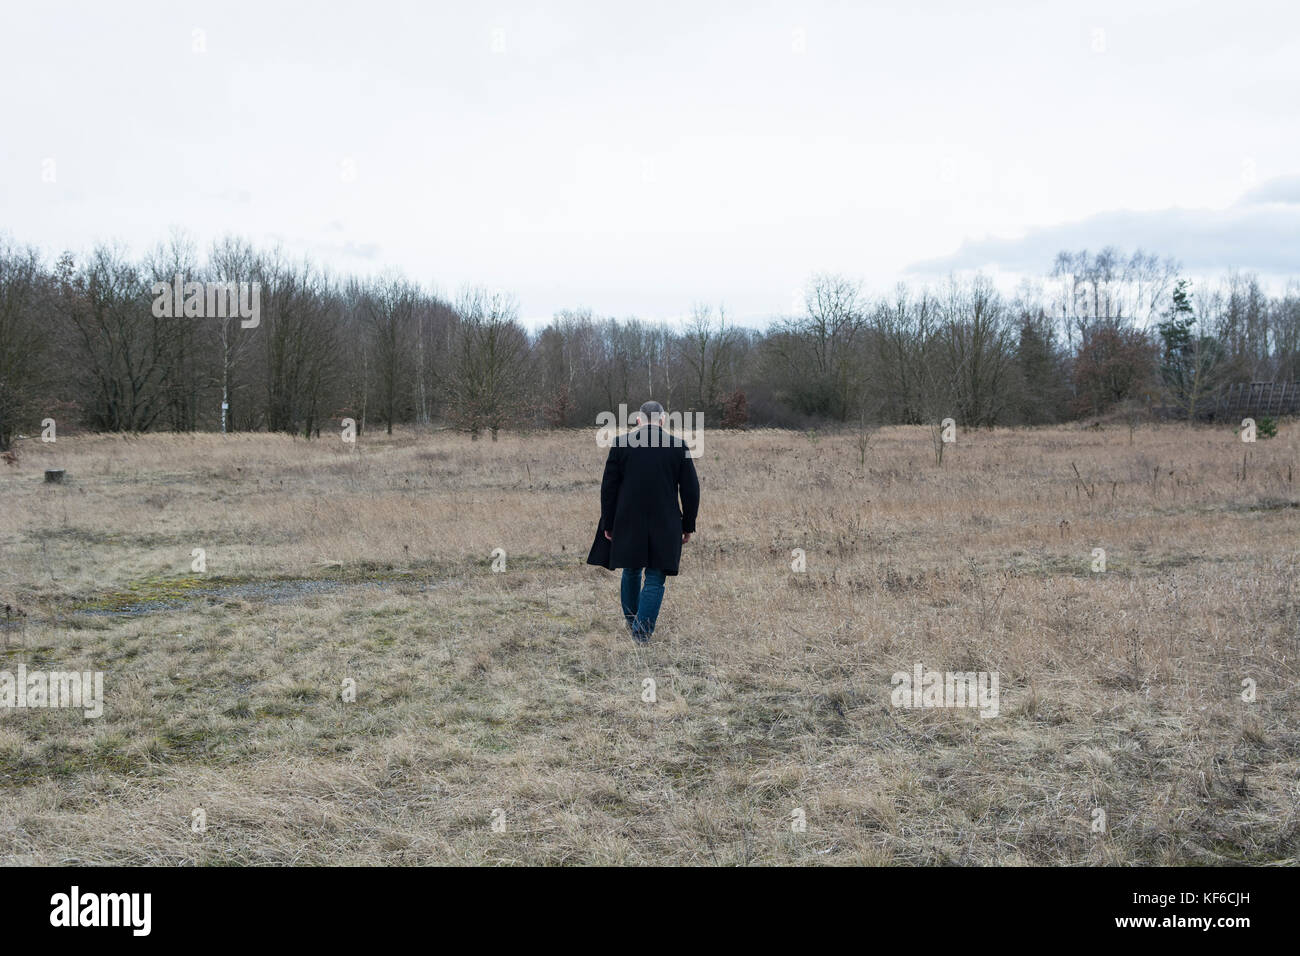 Rear view view of a man wearing a coat walking away in a field - Stock Image